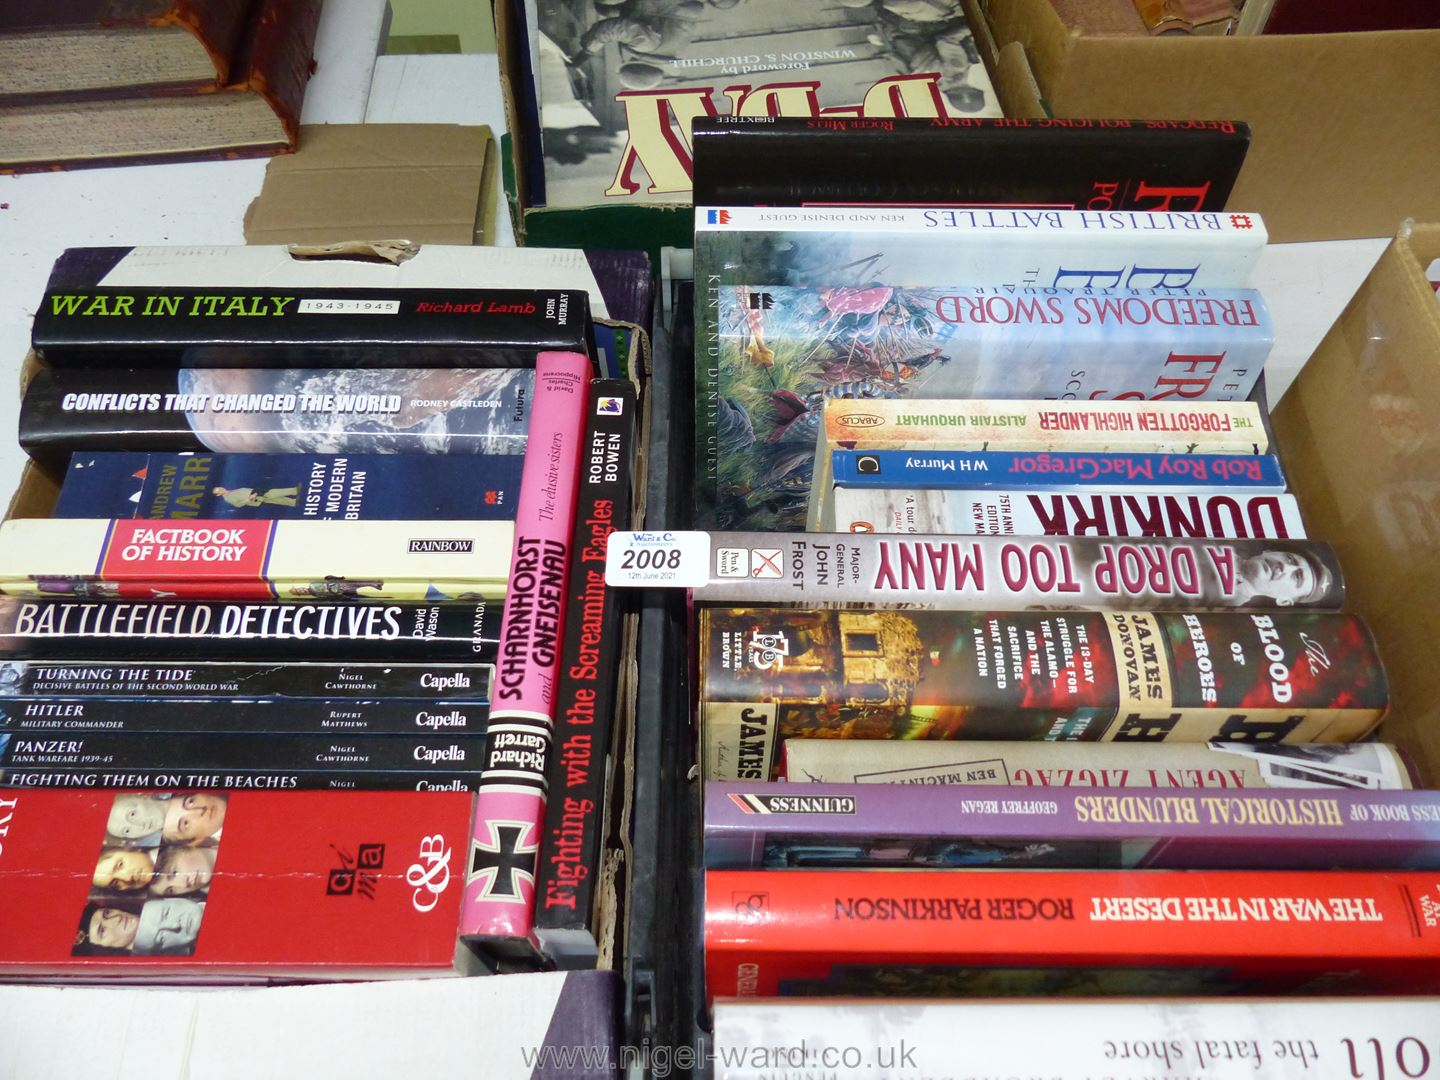 Two boxes of books on War and The History of War.